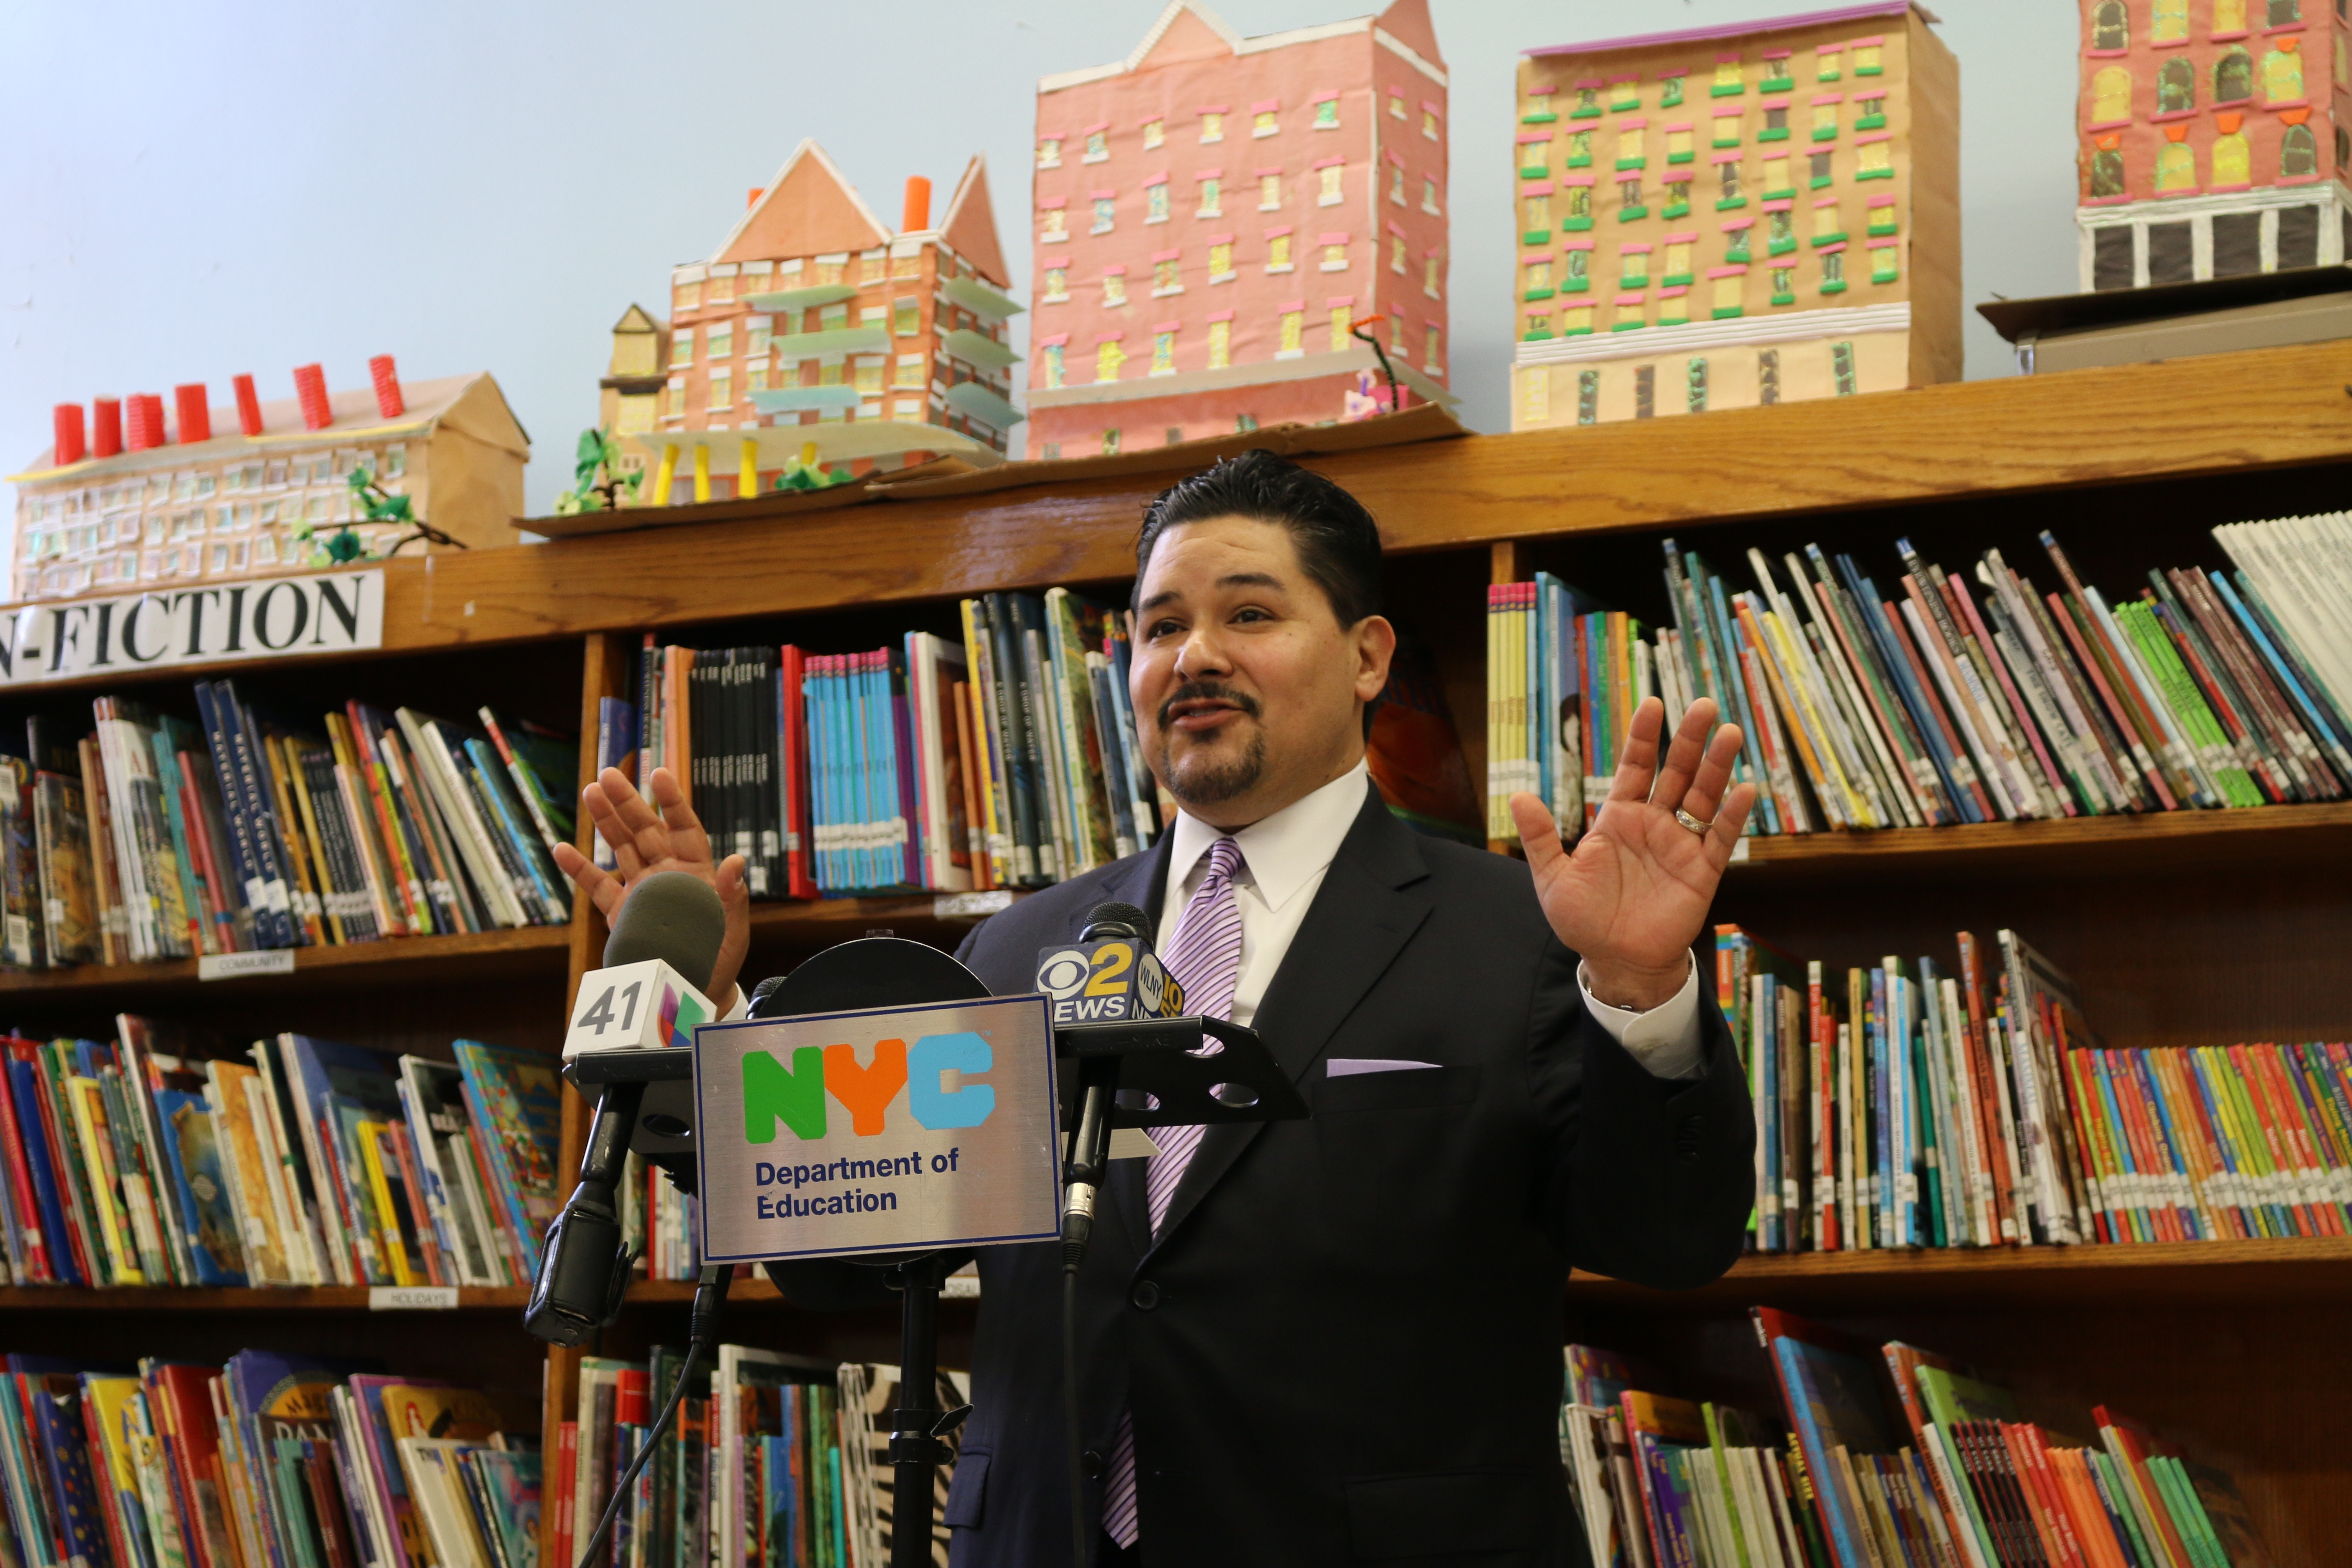 Schools Chancellor Richard Carranza at an unrelated press conference last year